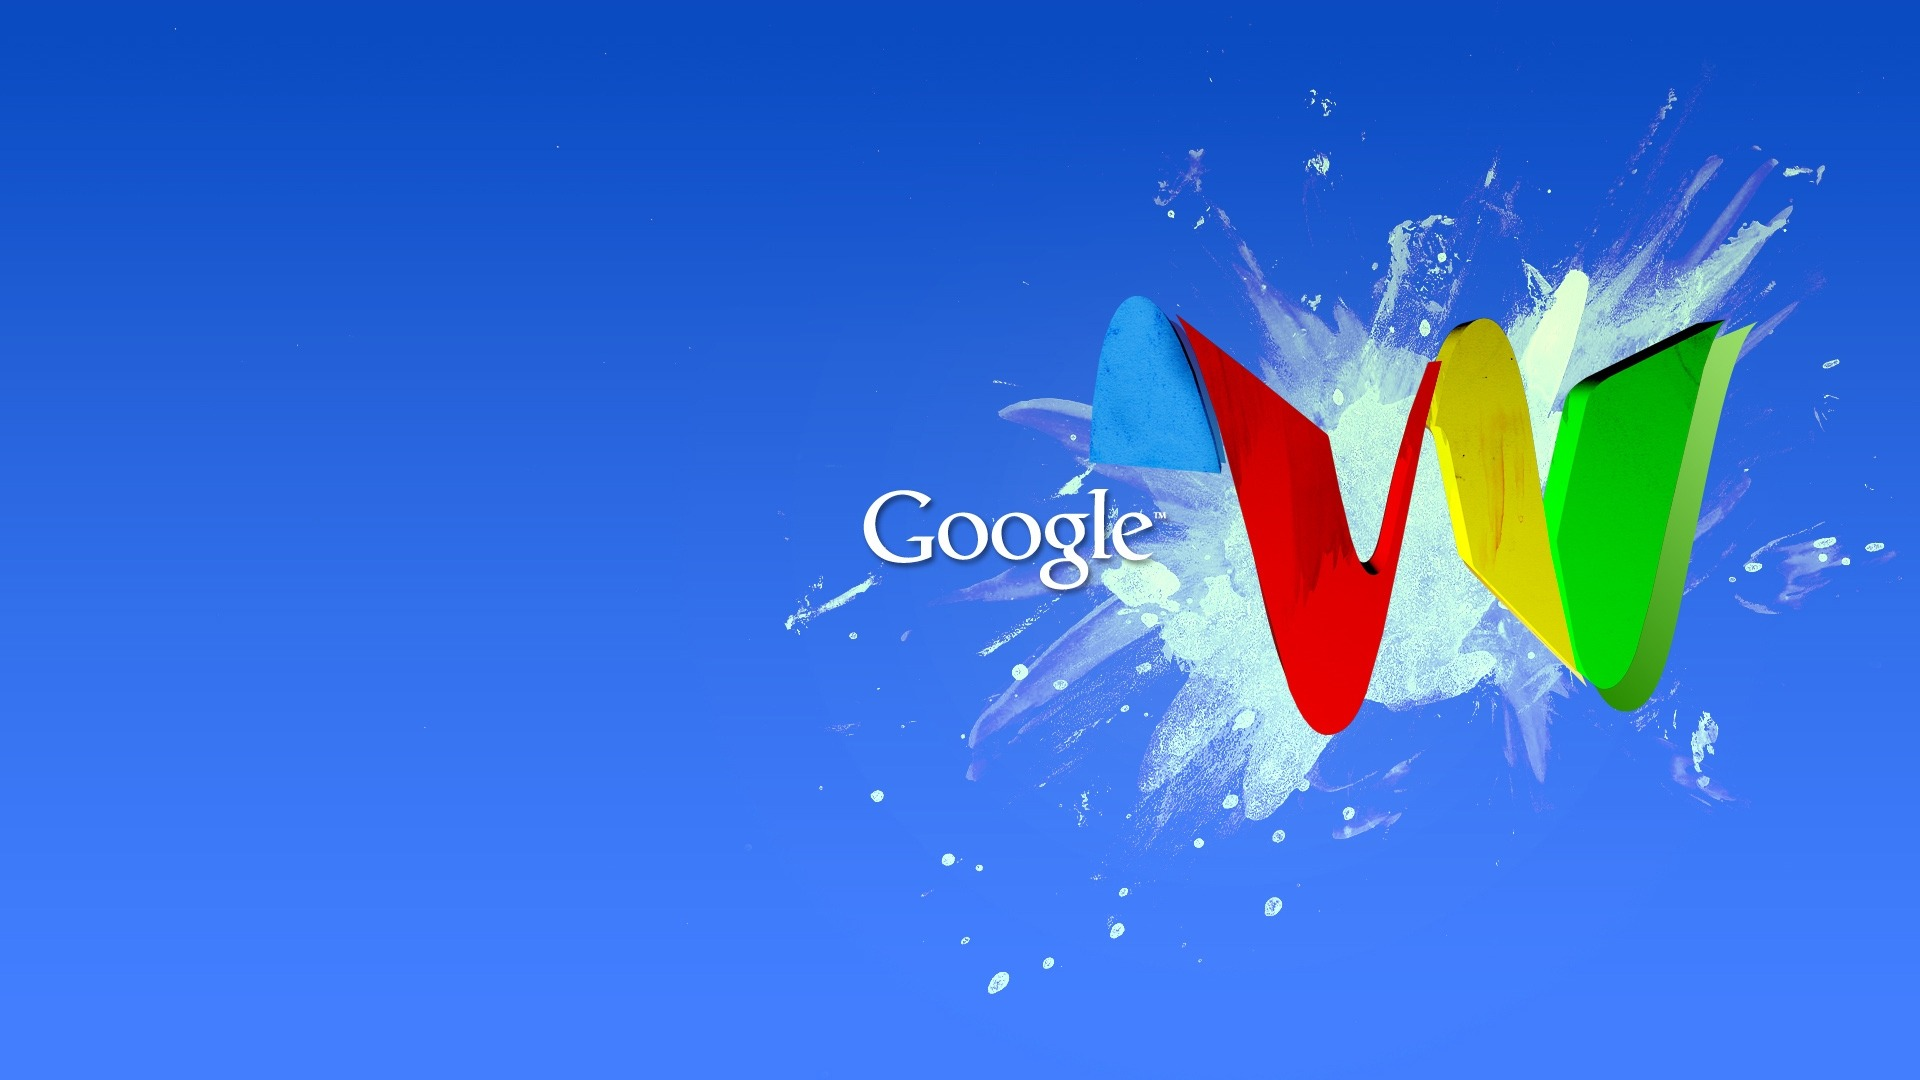 Google themes download for homepage - Art Google Logo Wallpaper Background Wallpaper With 1920x1080